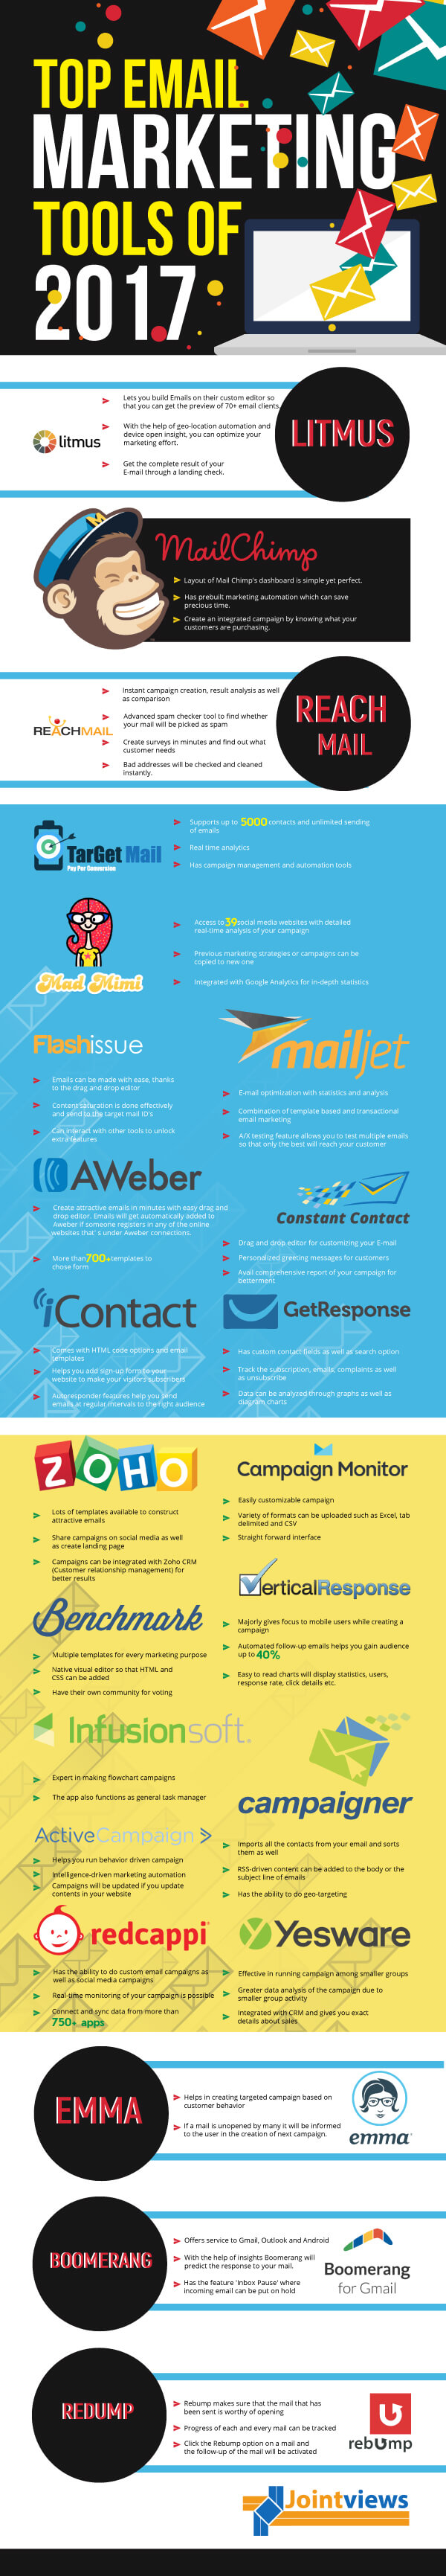 Top-Email-Marketing-tools-of-2017-infographic-plaza